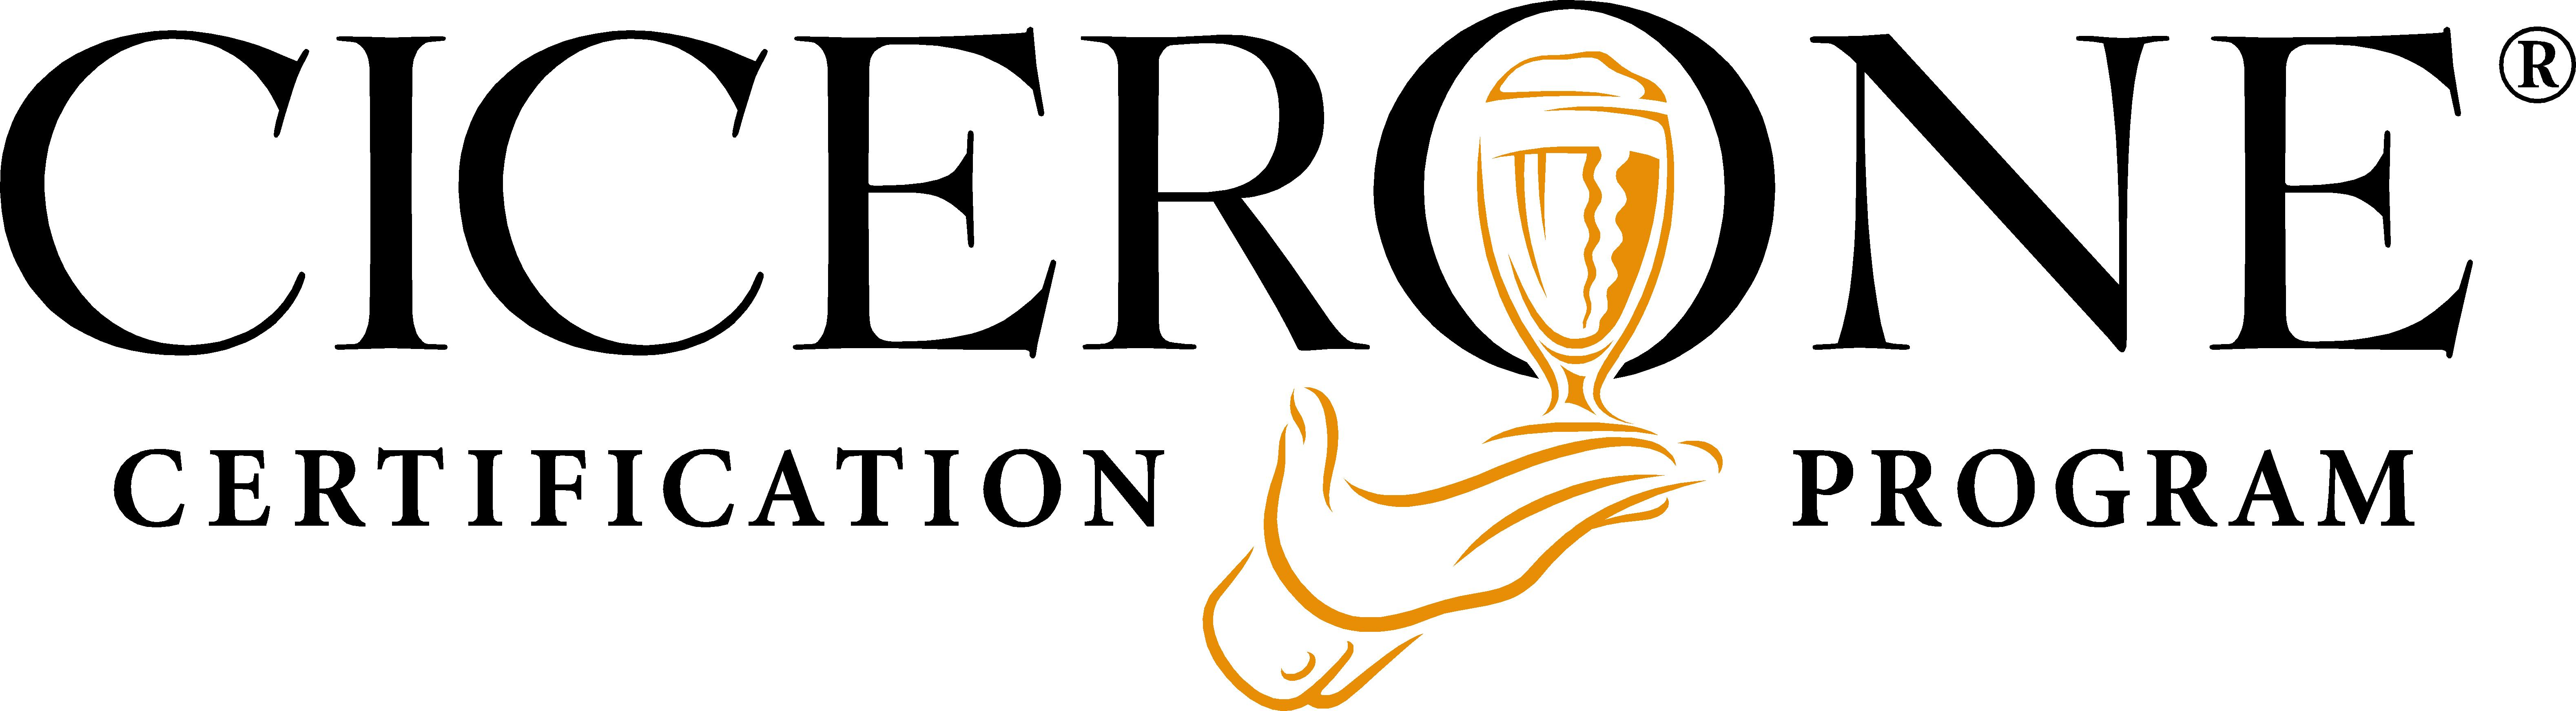 Cicerone certification program completes first advanced level cicerone certification program completes first advanced level exam brewbound xflitez Image collections